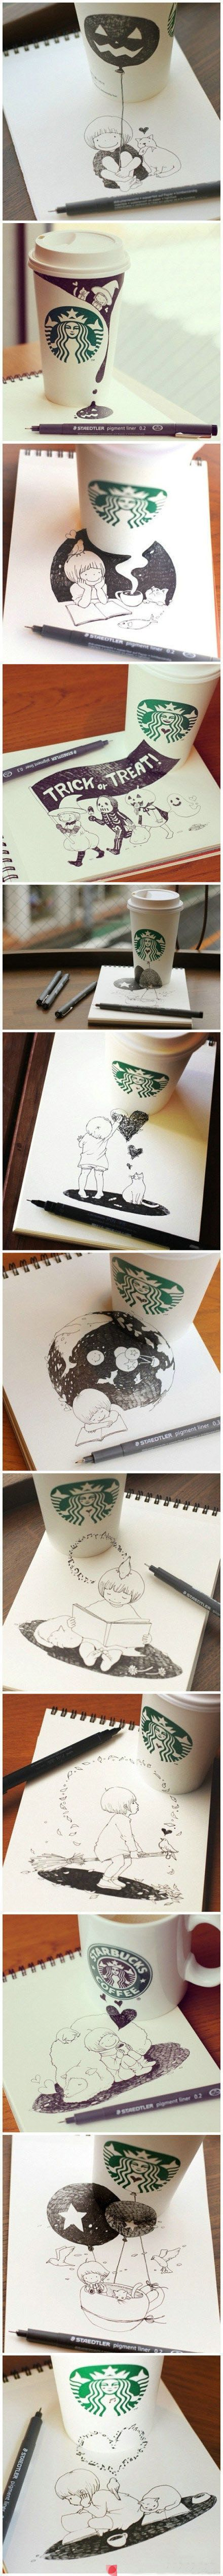 wonderful use of Starbucks cup to add depth